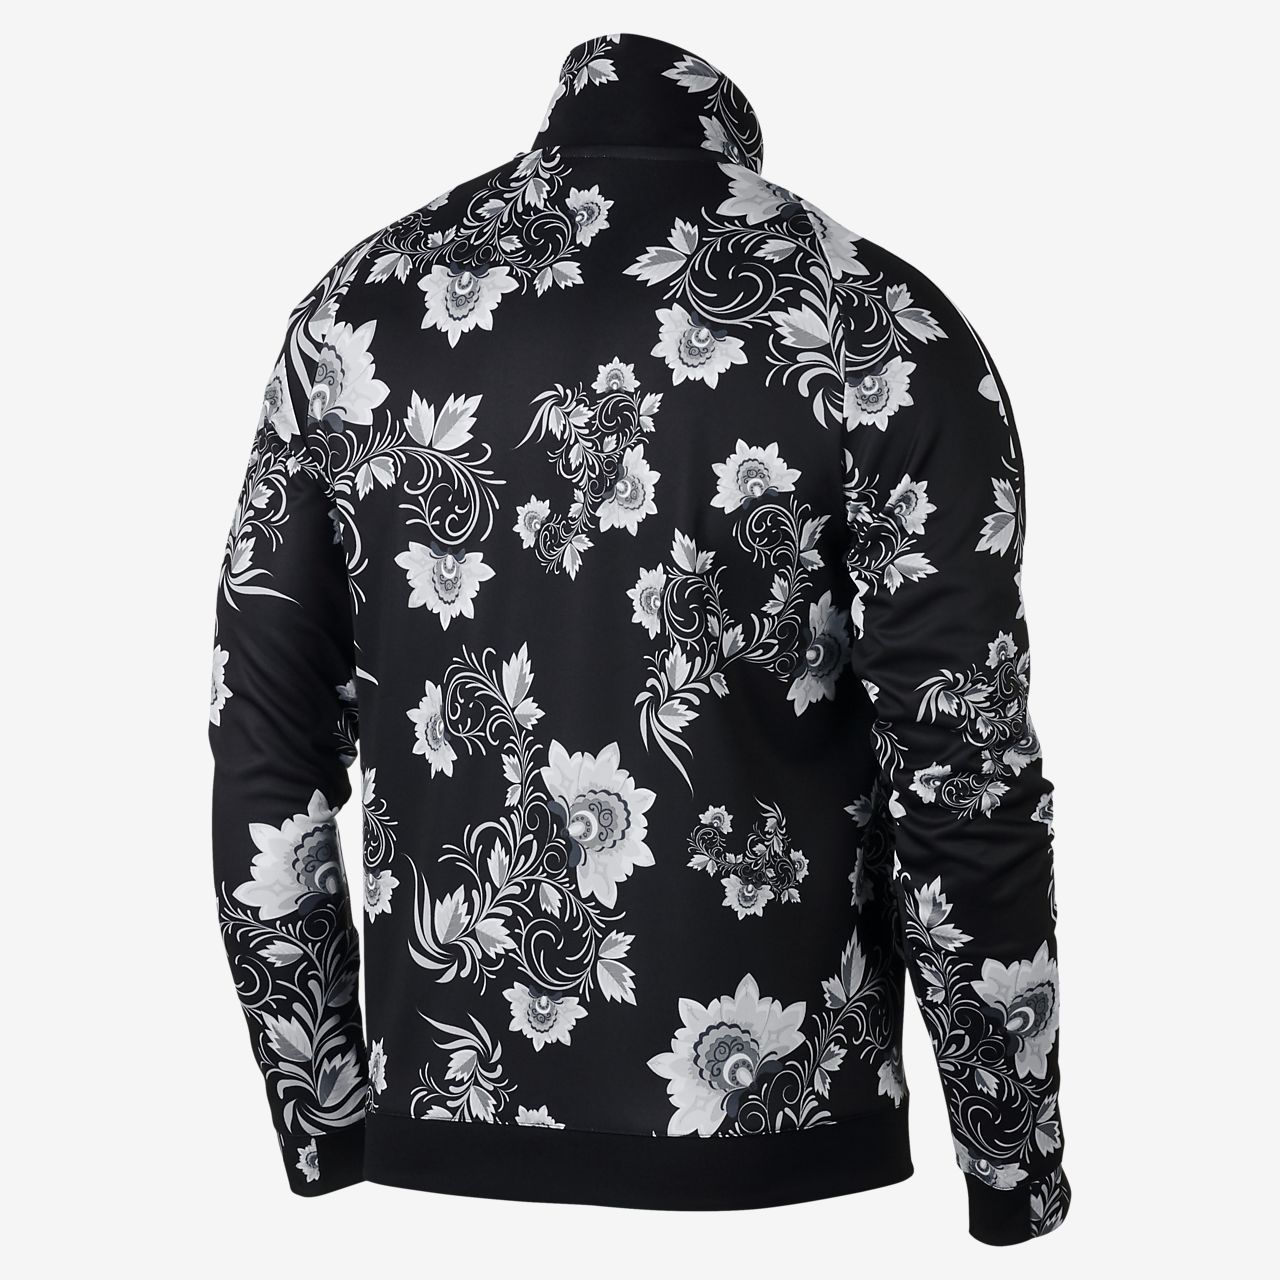 Black and white nike jacket nz